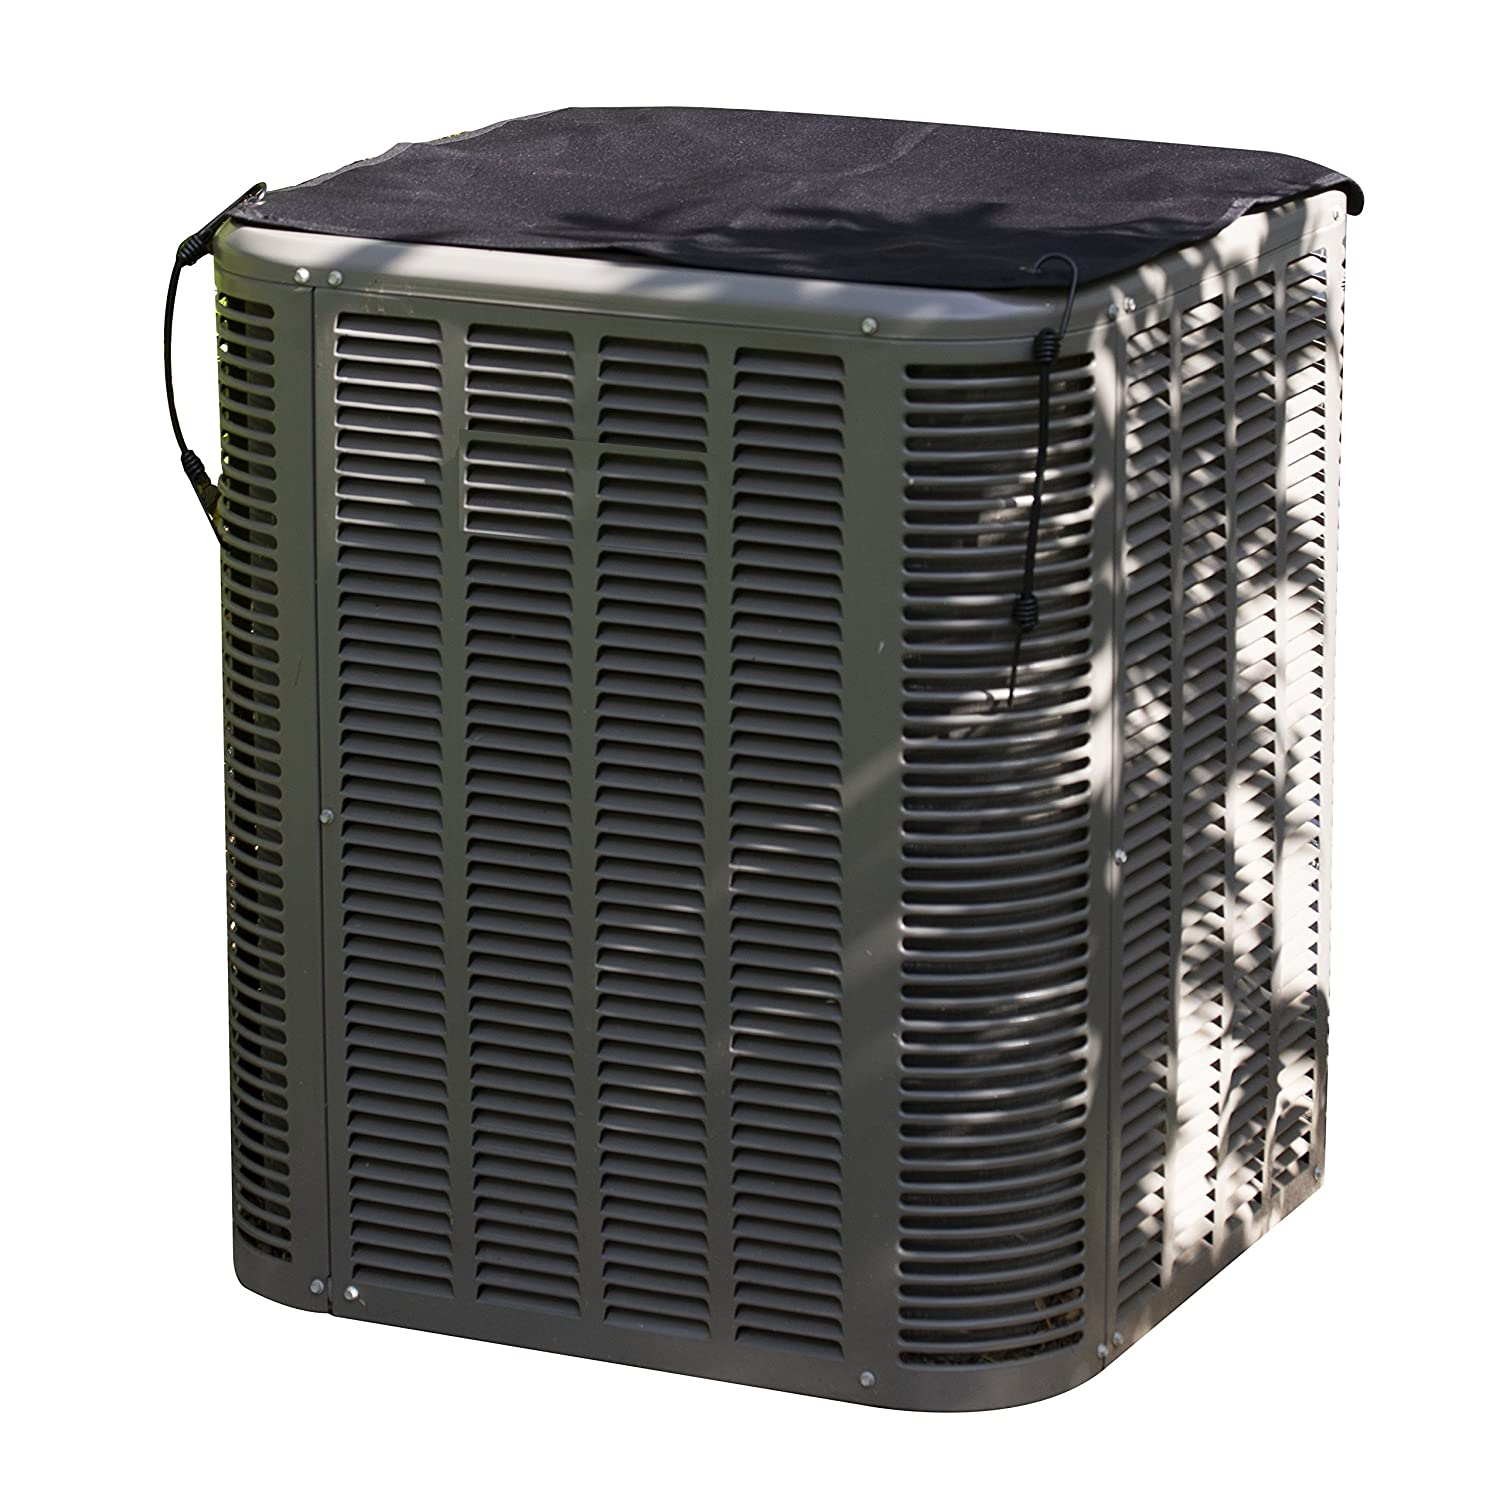 AnyWeather Central Air Conditioner Top Outdoor Cover, Black AWPC11